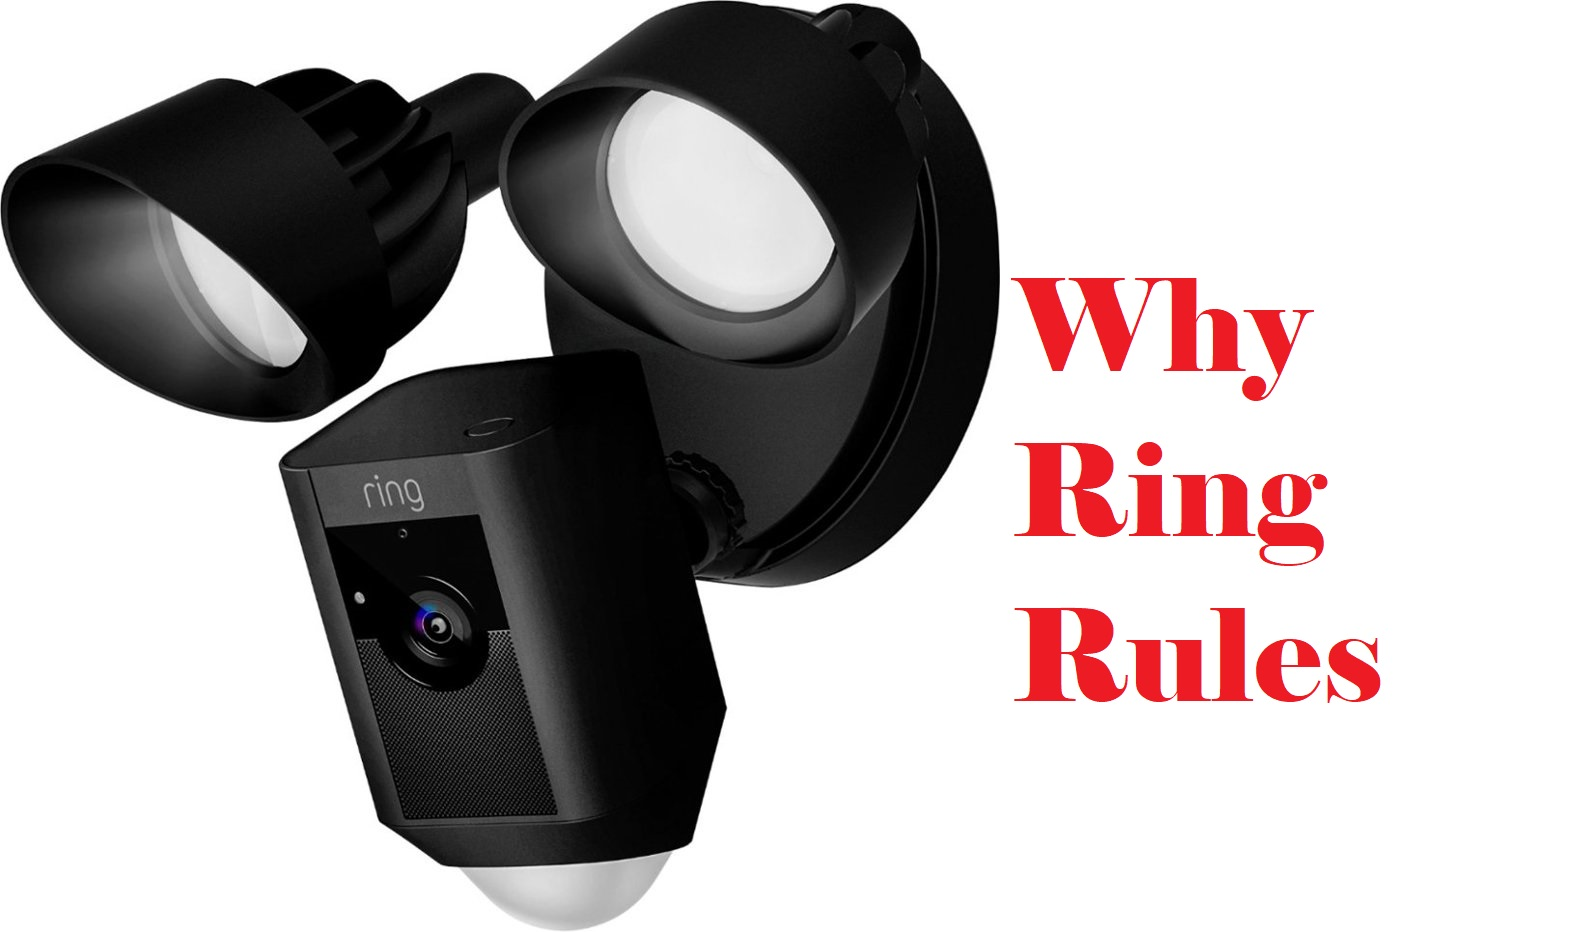 Ring: The Ultimate Technology to Protect Your Home or Business?